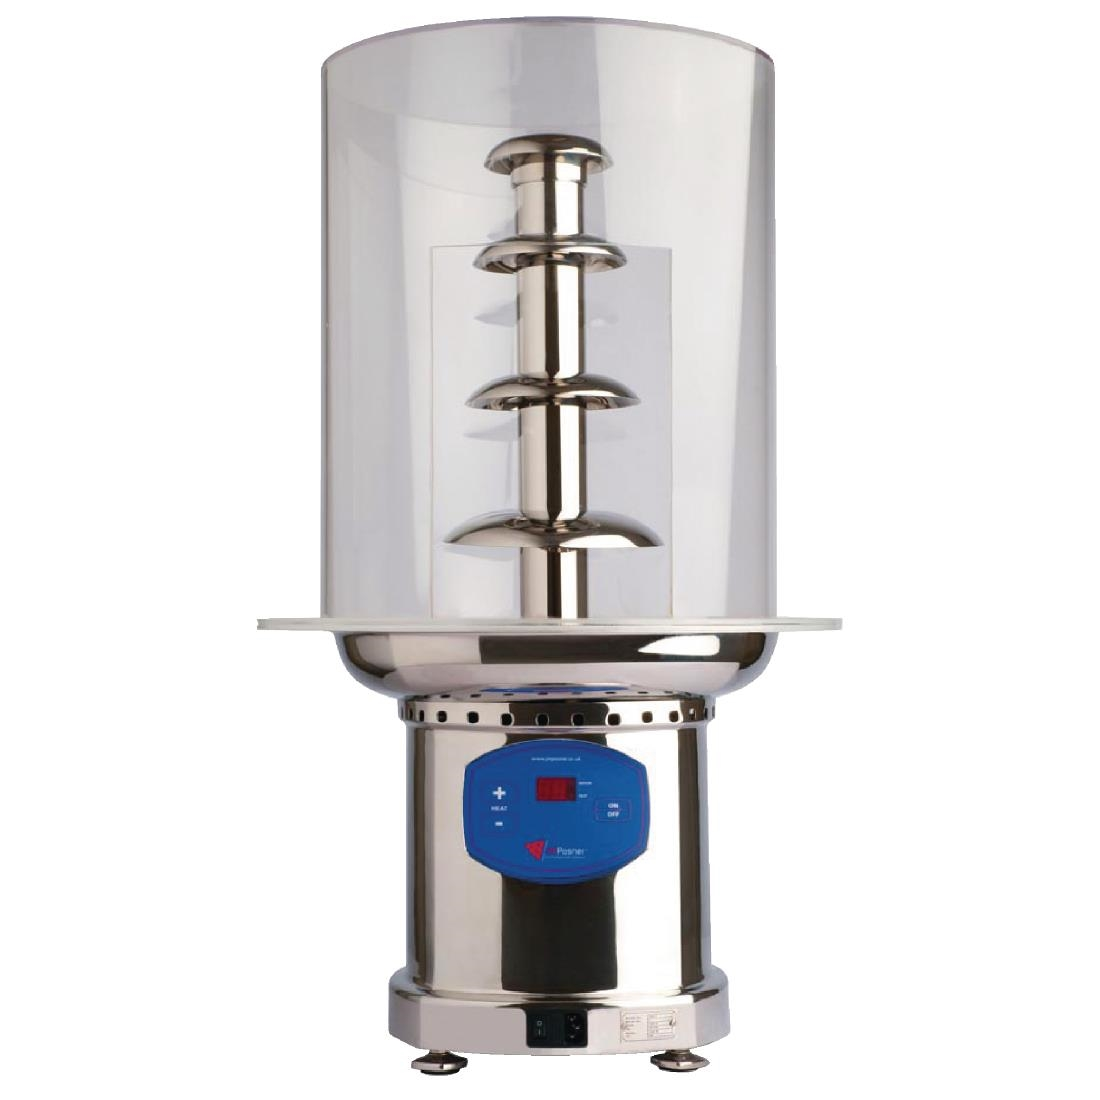 Image of JM Posner Chocolate Fountain Wind Guard for DN674